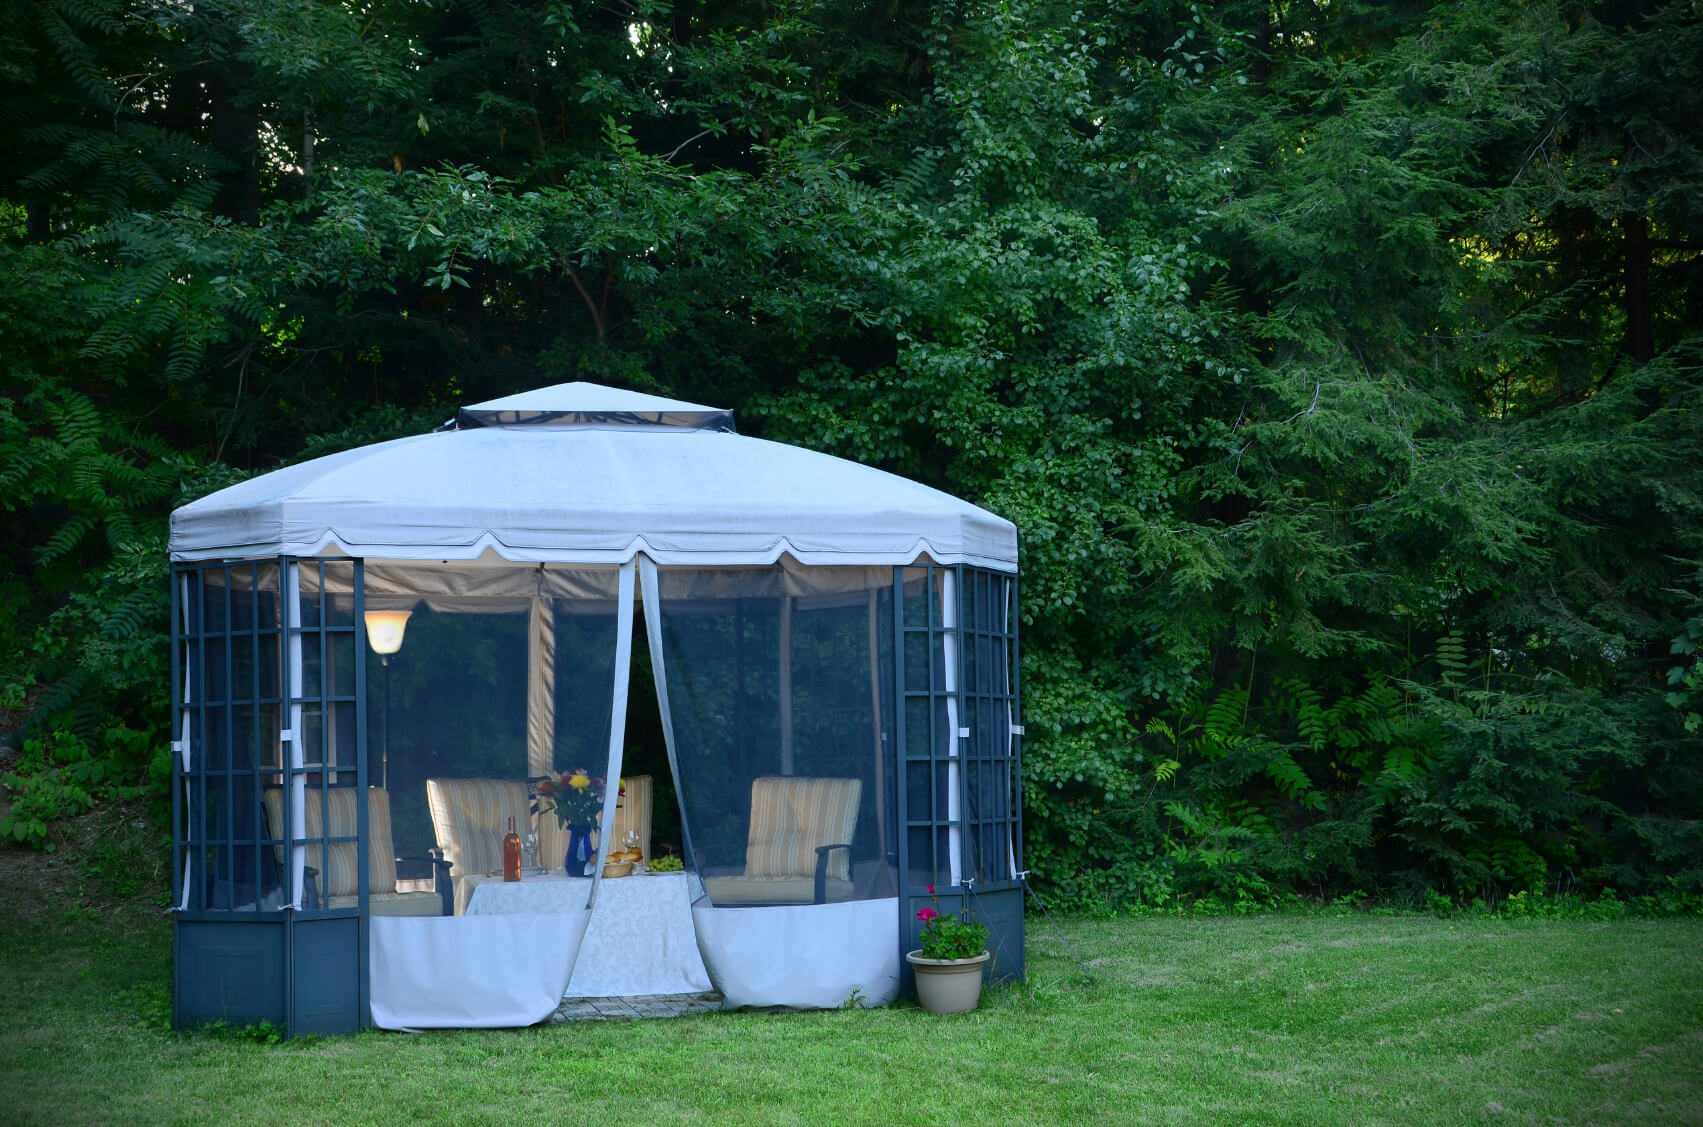 Replacement Screen for Gazebo | Screened in Gazebo Kits | Screened Gazebo